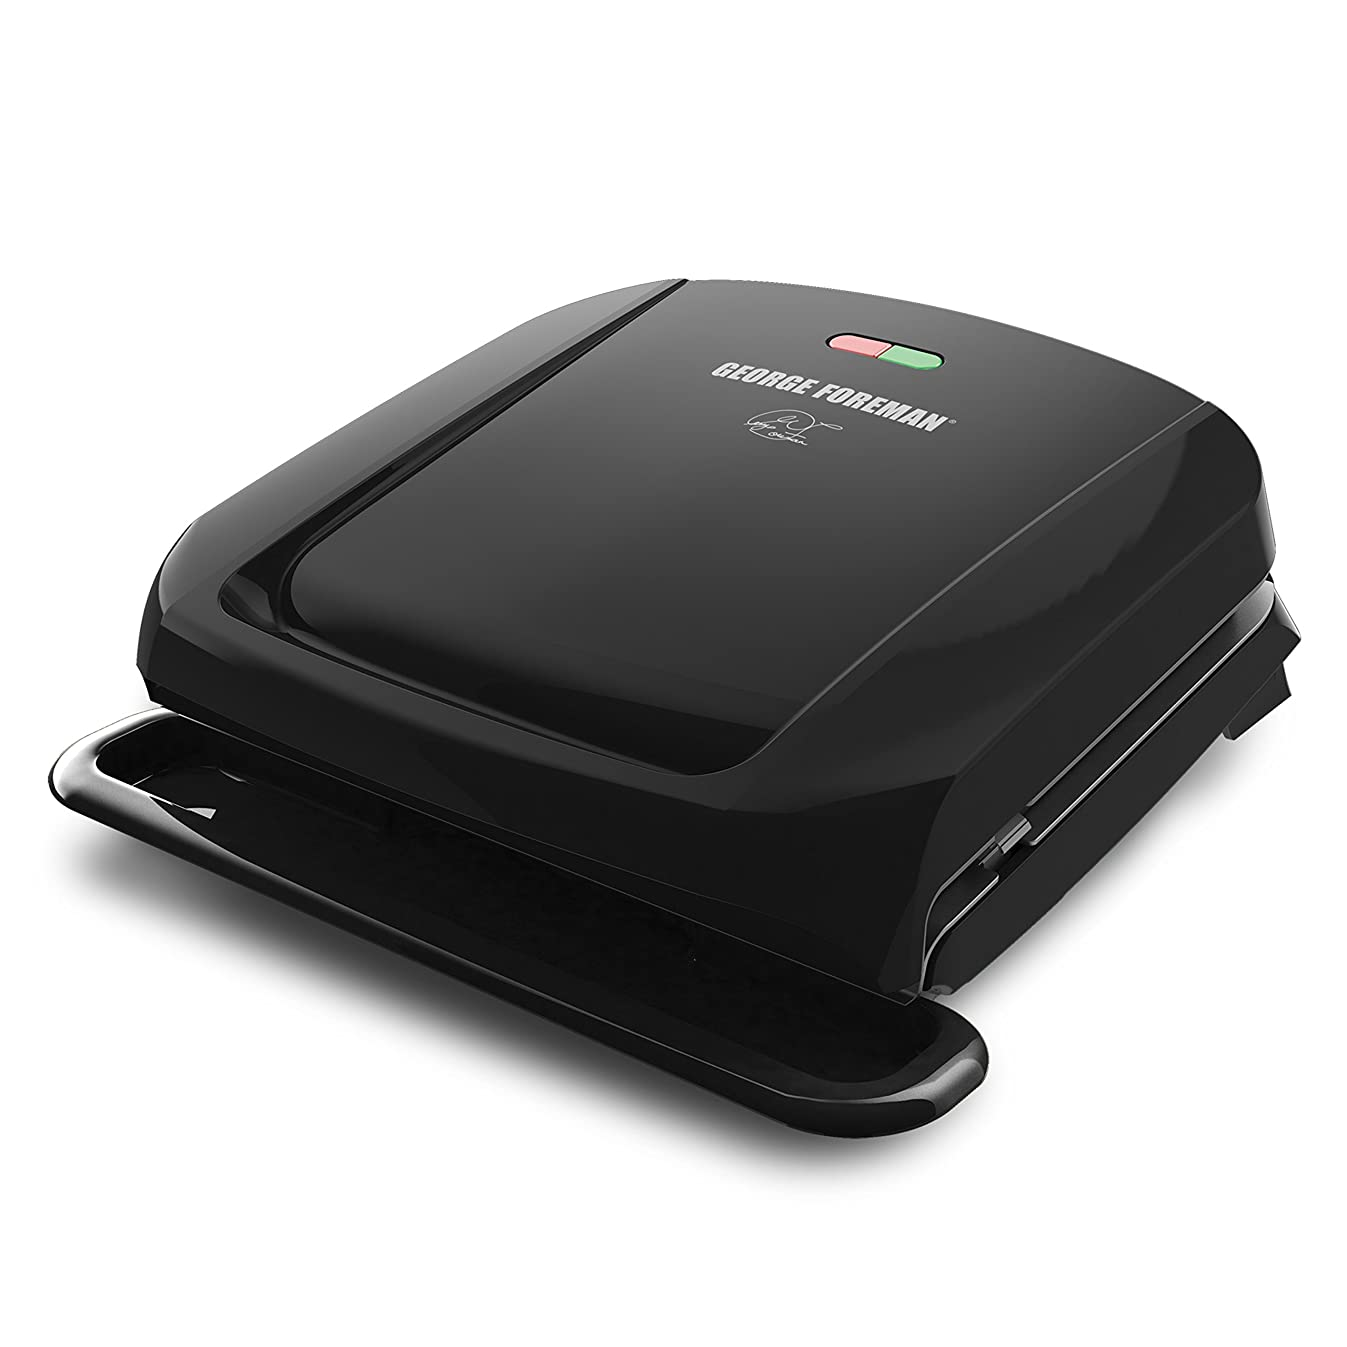 George Foreman 4-Serving Removable Plate Grill and Panini Press, Black, GRP1060B